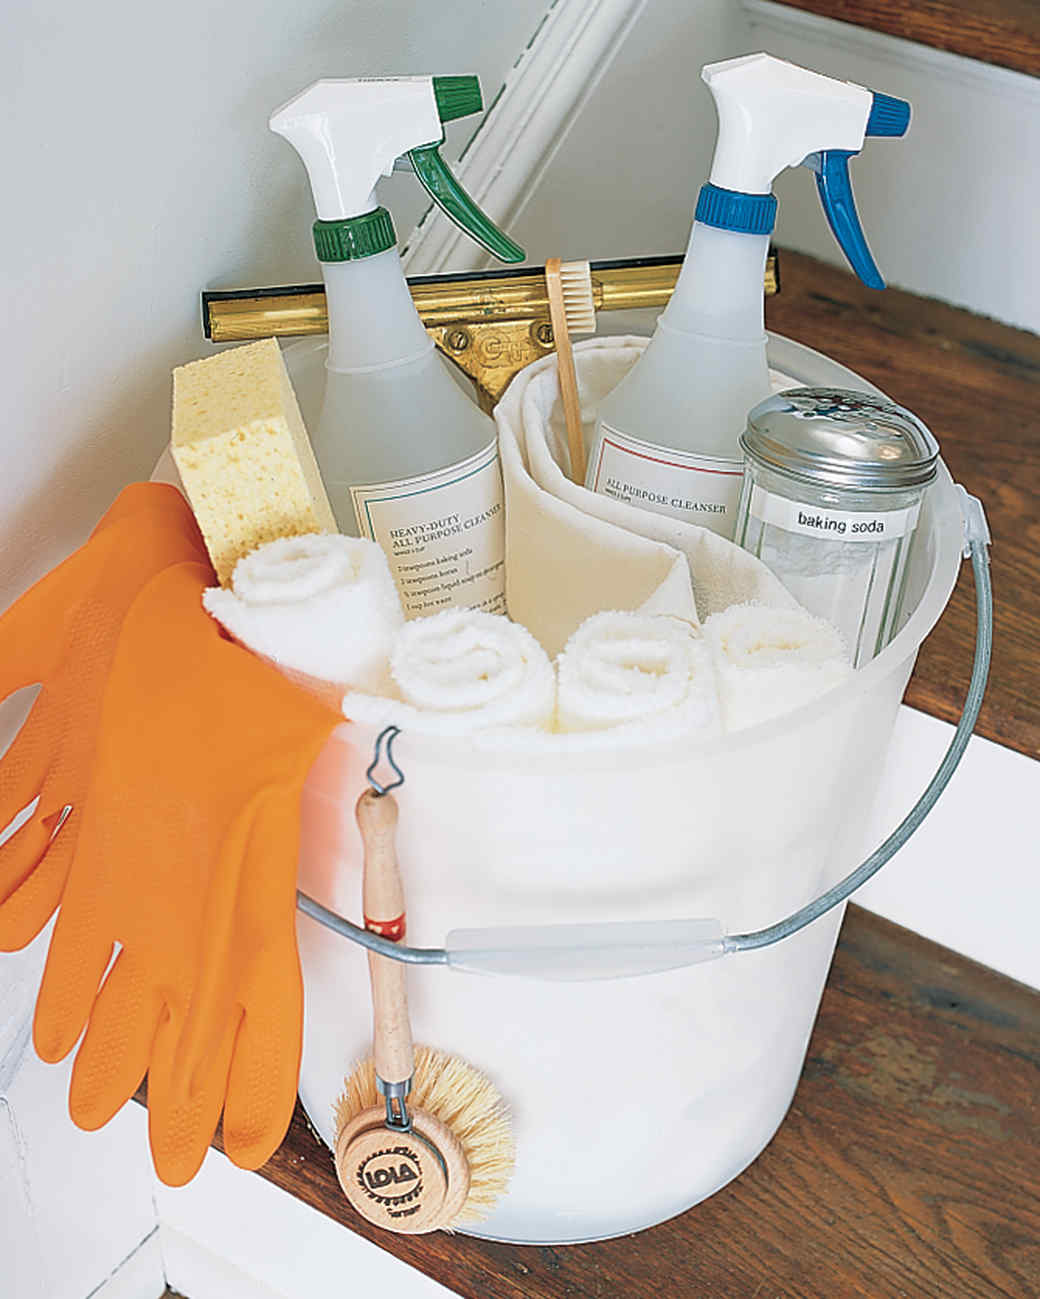 martha stewart kitchen towels aid gas stove bathroom cleaning made easy